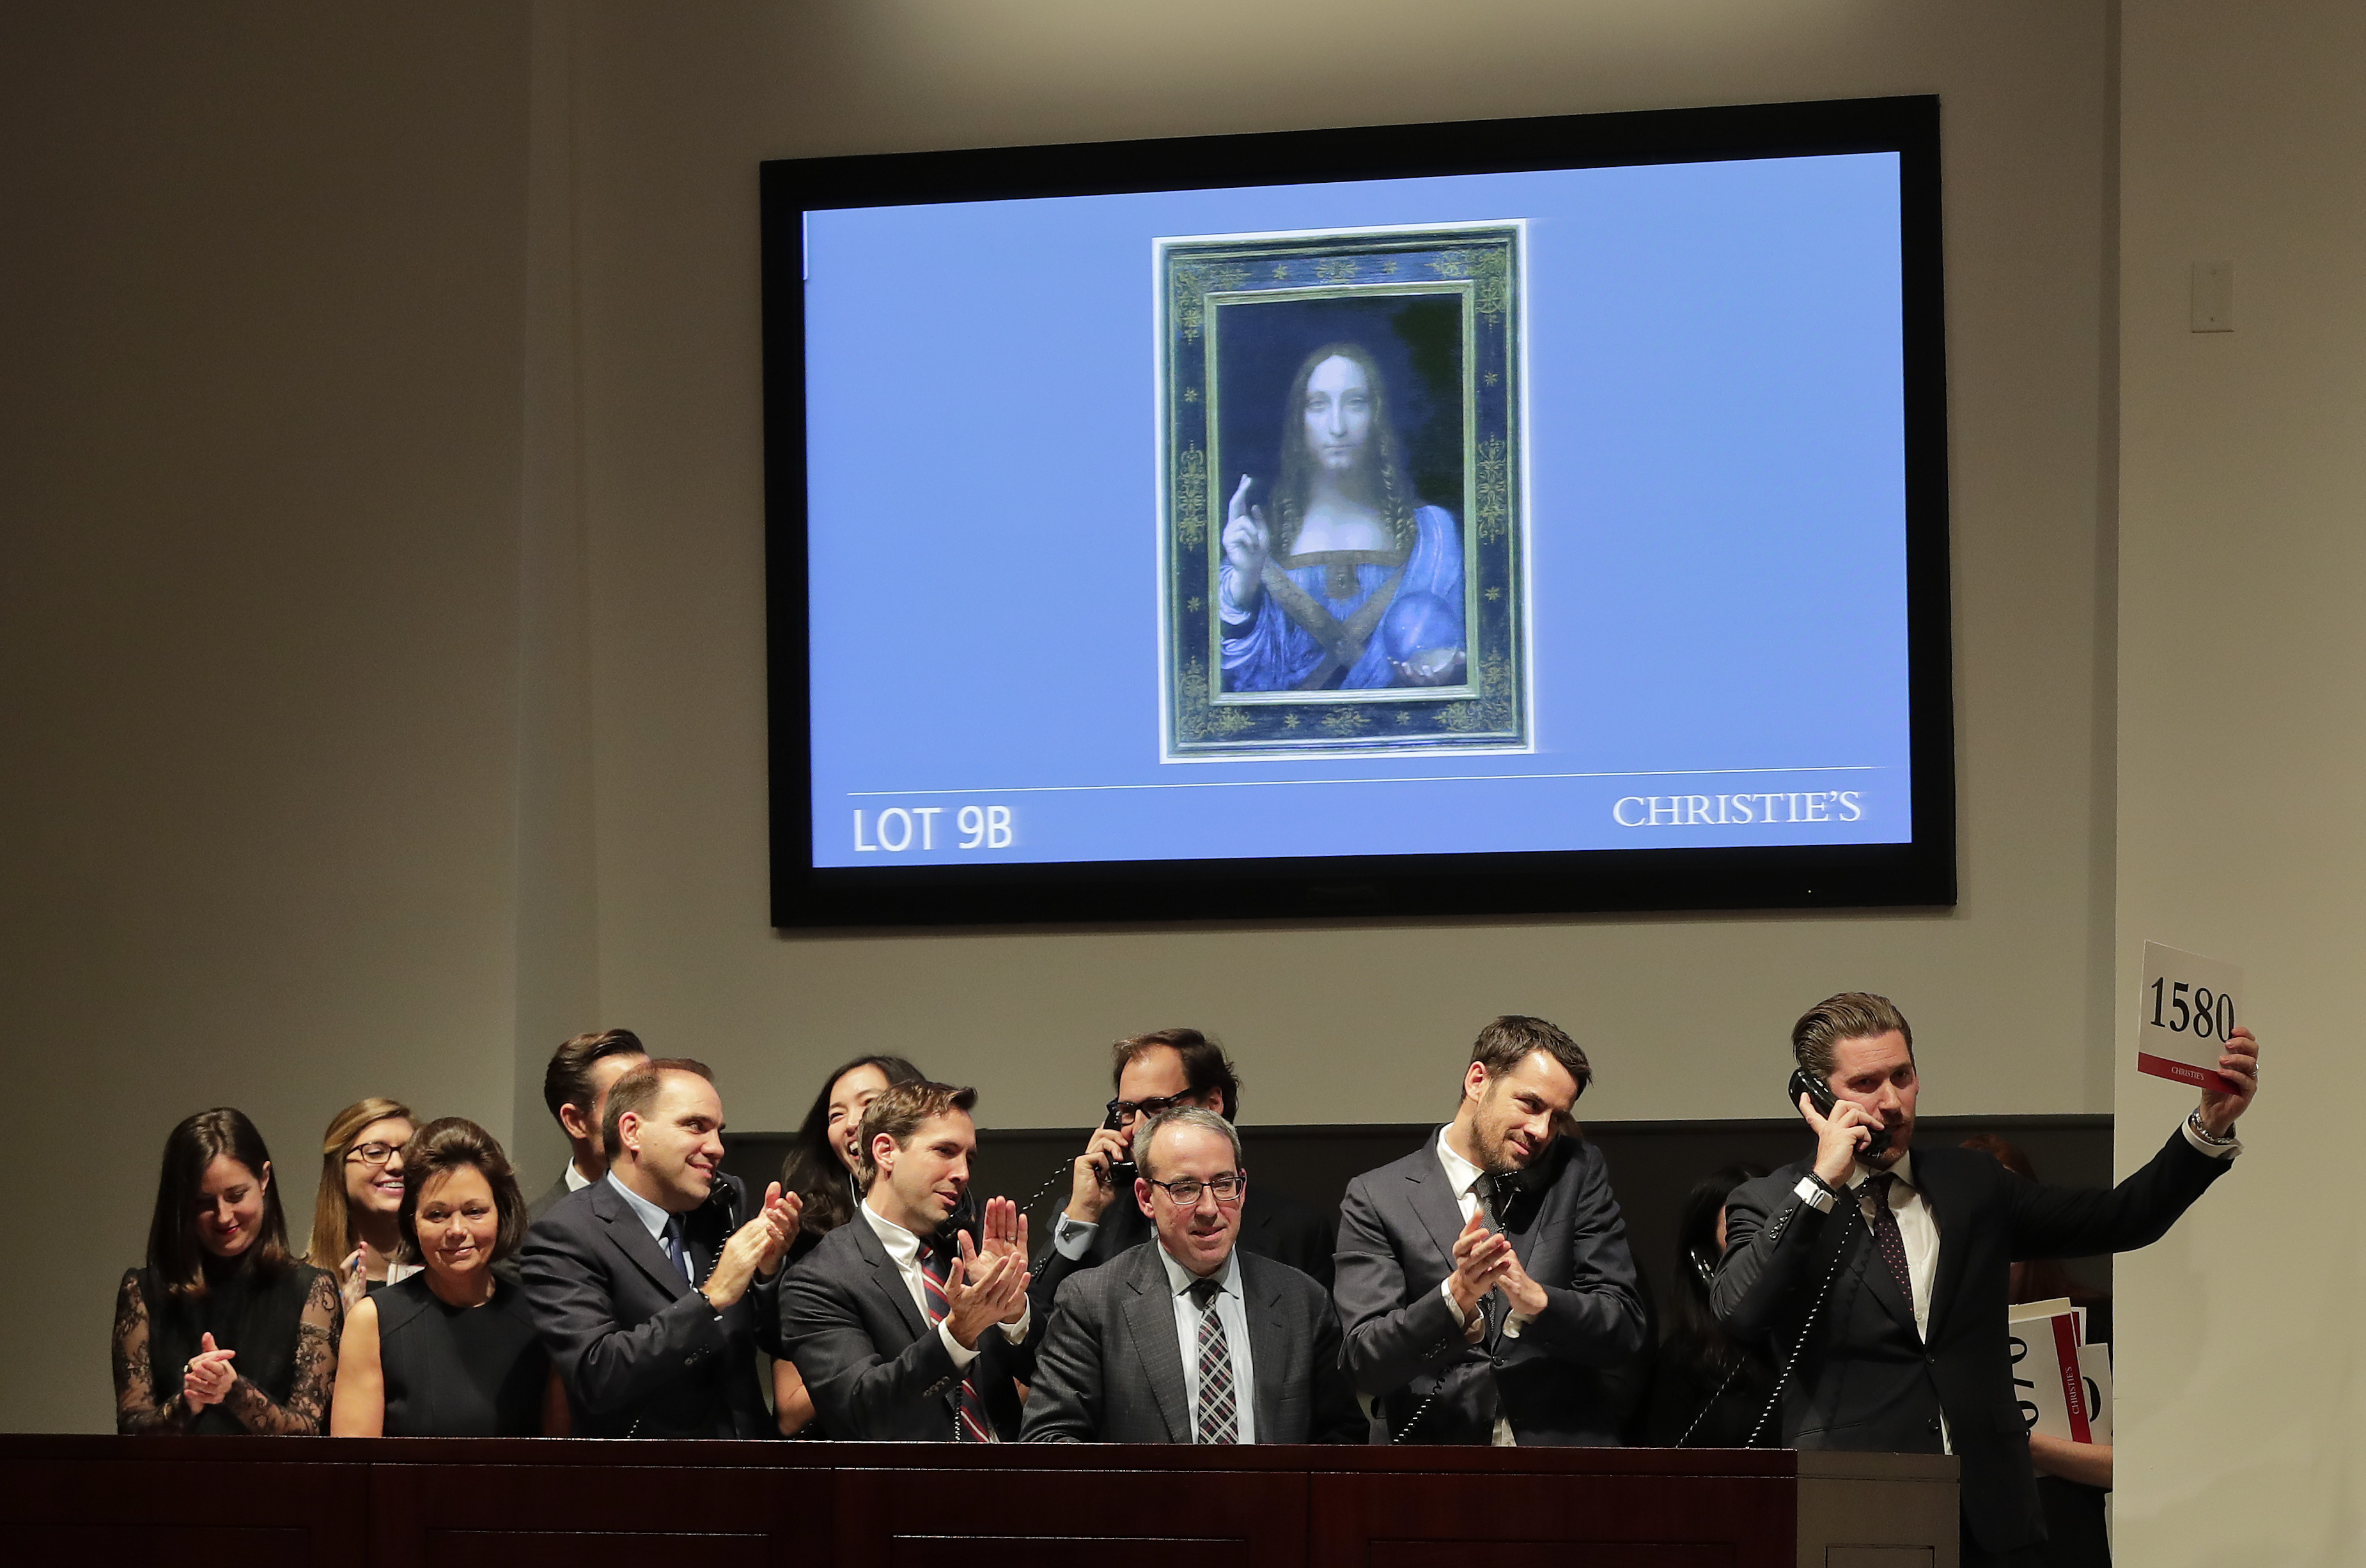 """FILE- In this Wednesday, Nov. 15, 2017 file photo, bidding representatives react after Leonardo da Vinci's """"Salvator Mundi"""" sold for dollars 450 million at Christie's, in New York. Abu Dhabi's Department of Culture and Tourism announced Wednesday June 27, 2018, that Leonardo da Vinci's Renaissance oil painting of Christ 'Salvator Mundi' will be put on display at The Louvre Abu Dhabi from Sept. 18. (AP Photo/Julie Jacobson, File)"""